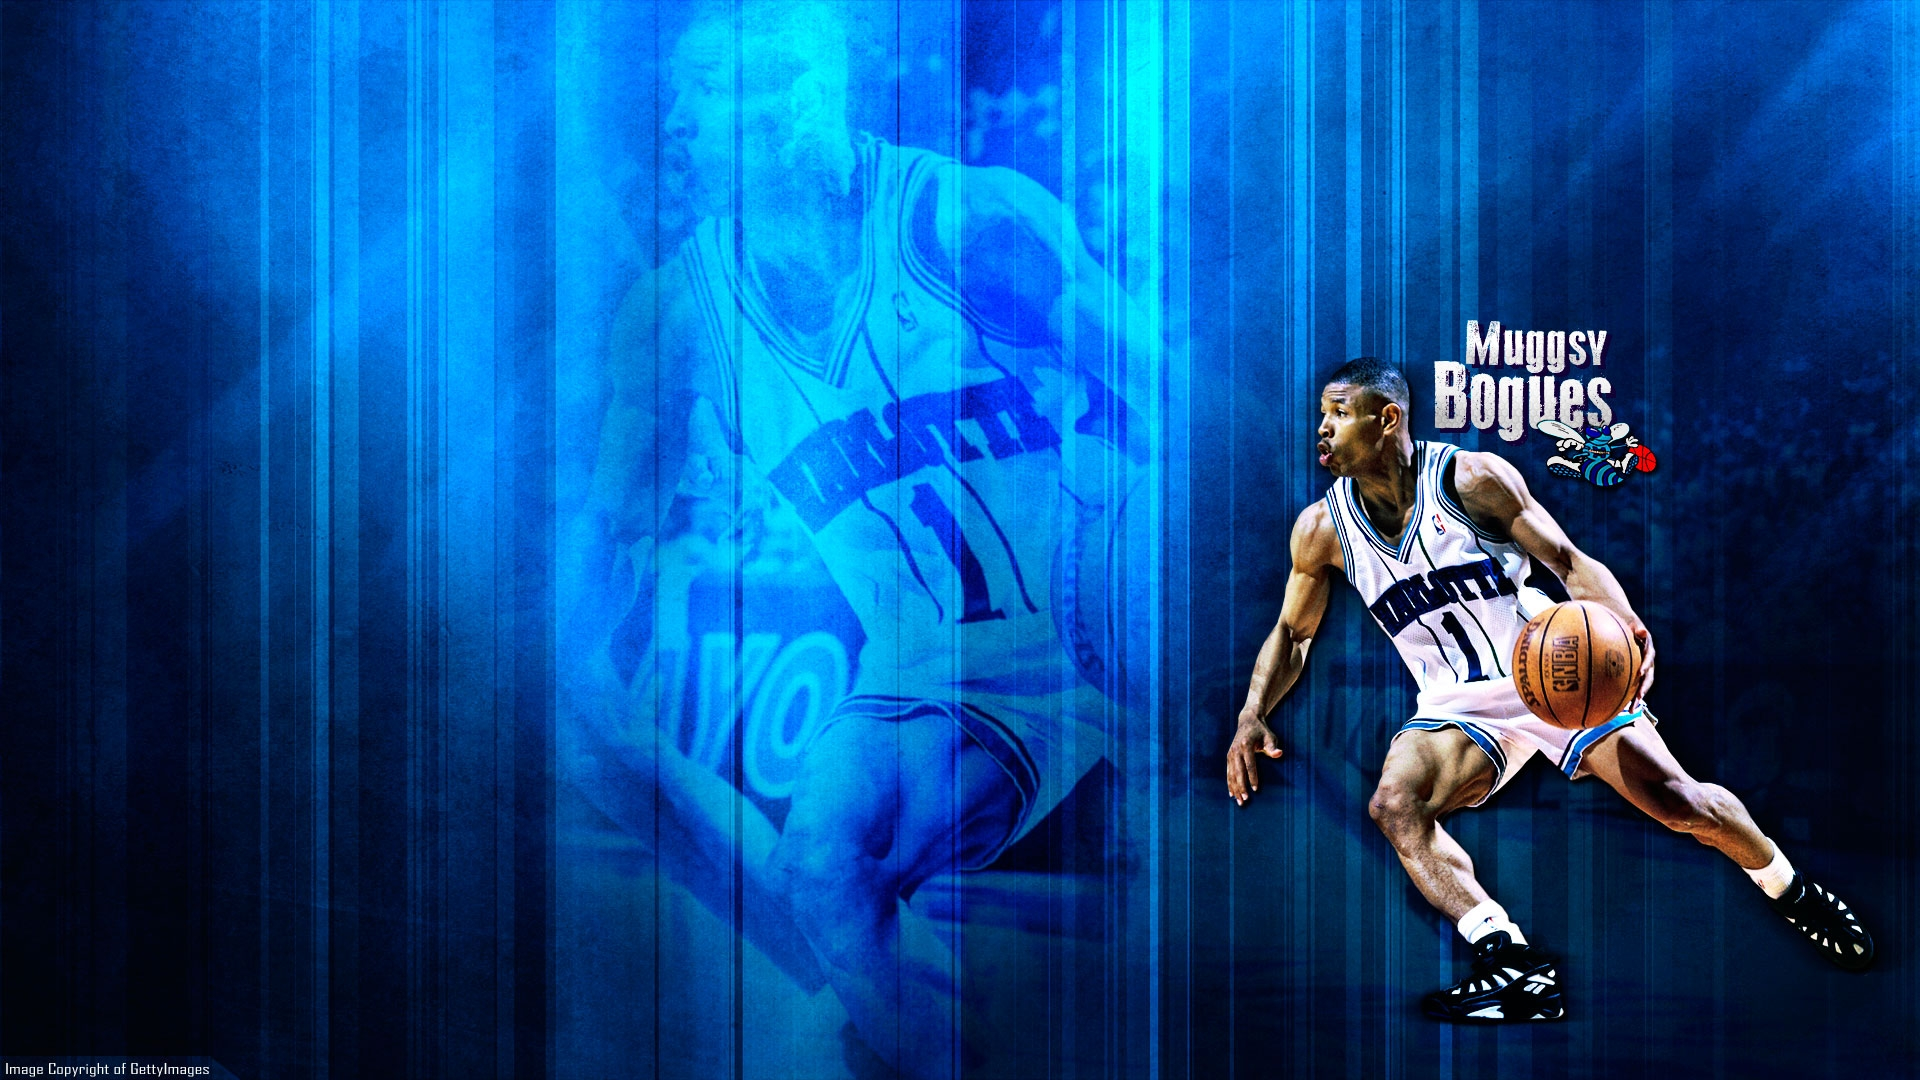 Muggsy Bogues basketball wallpaper